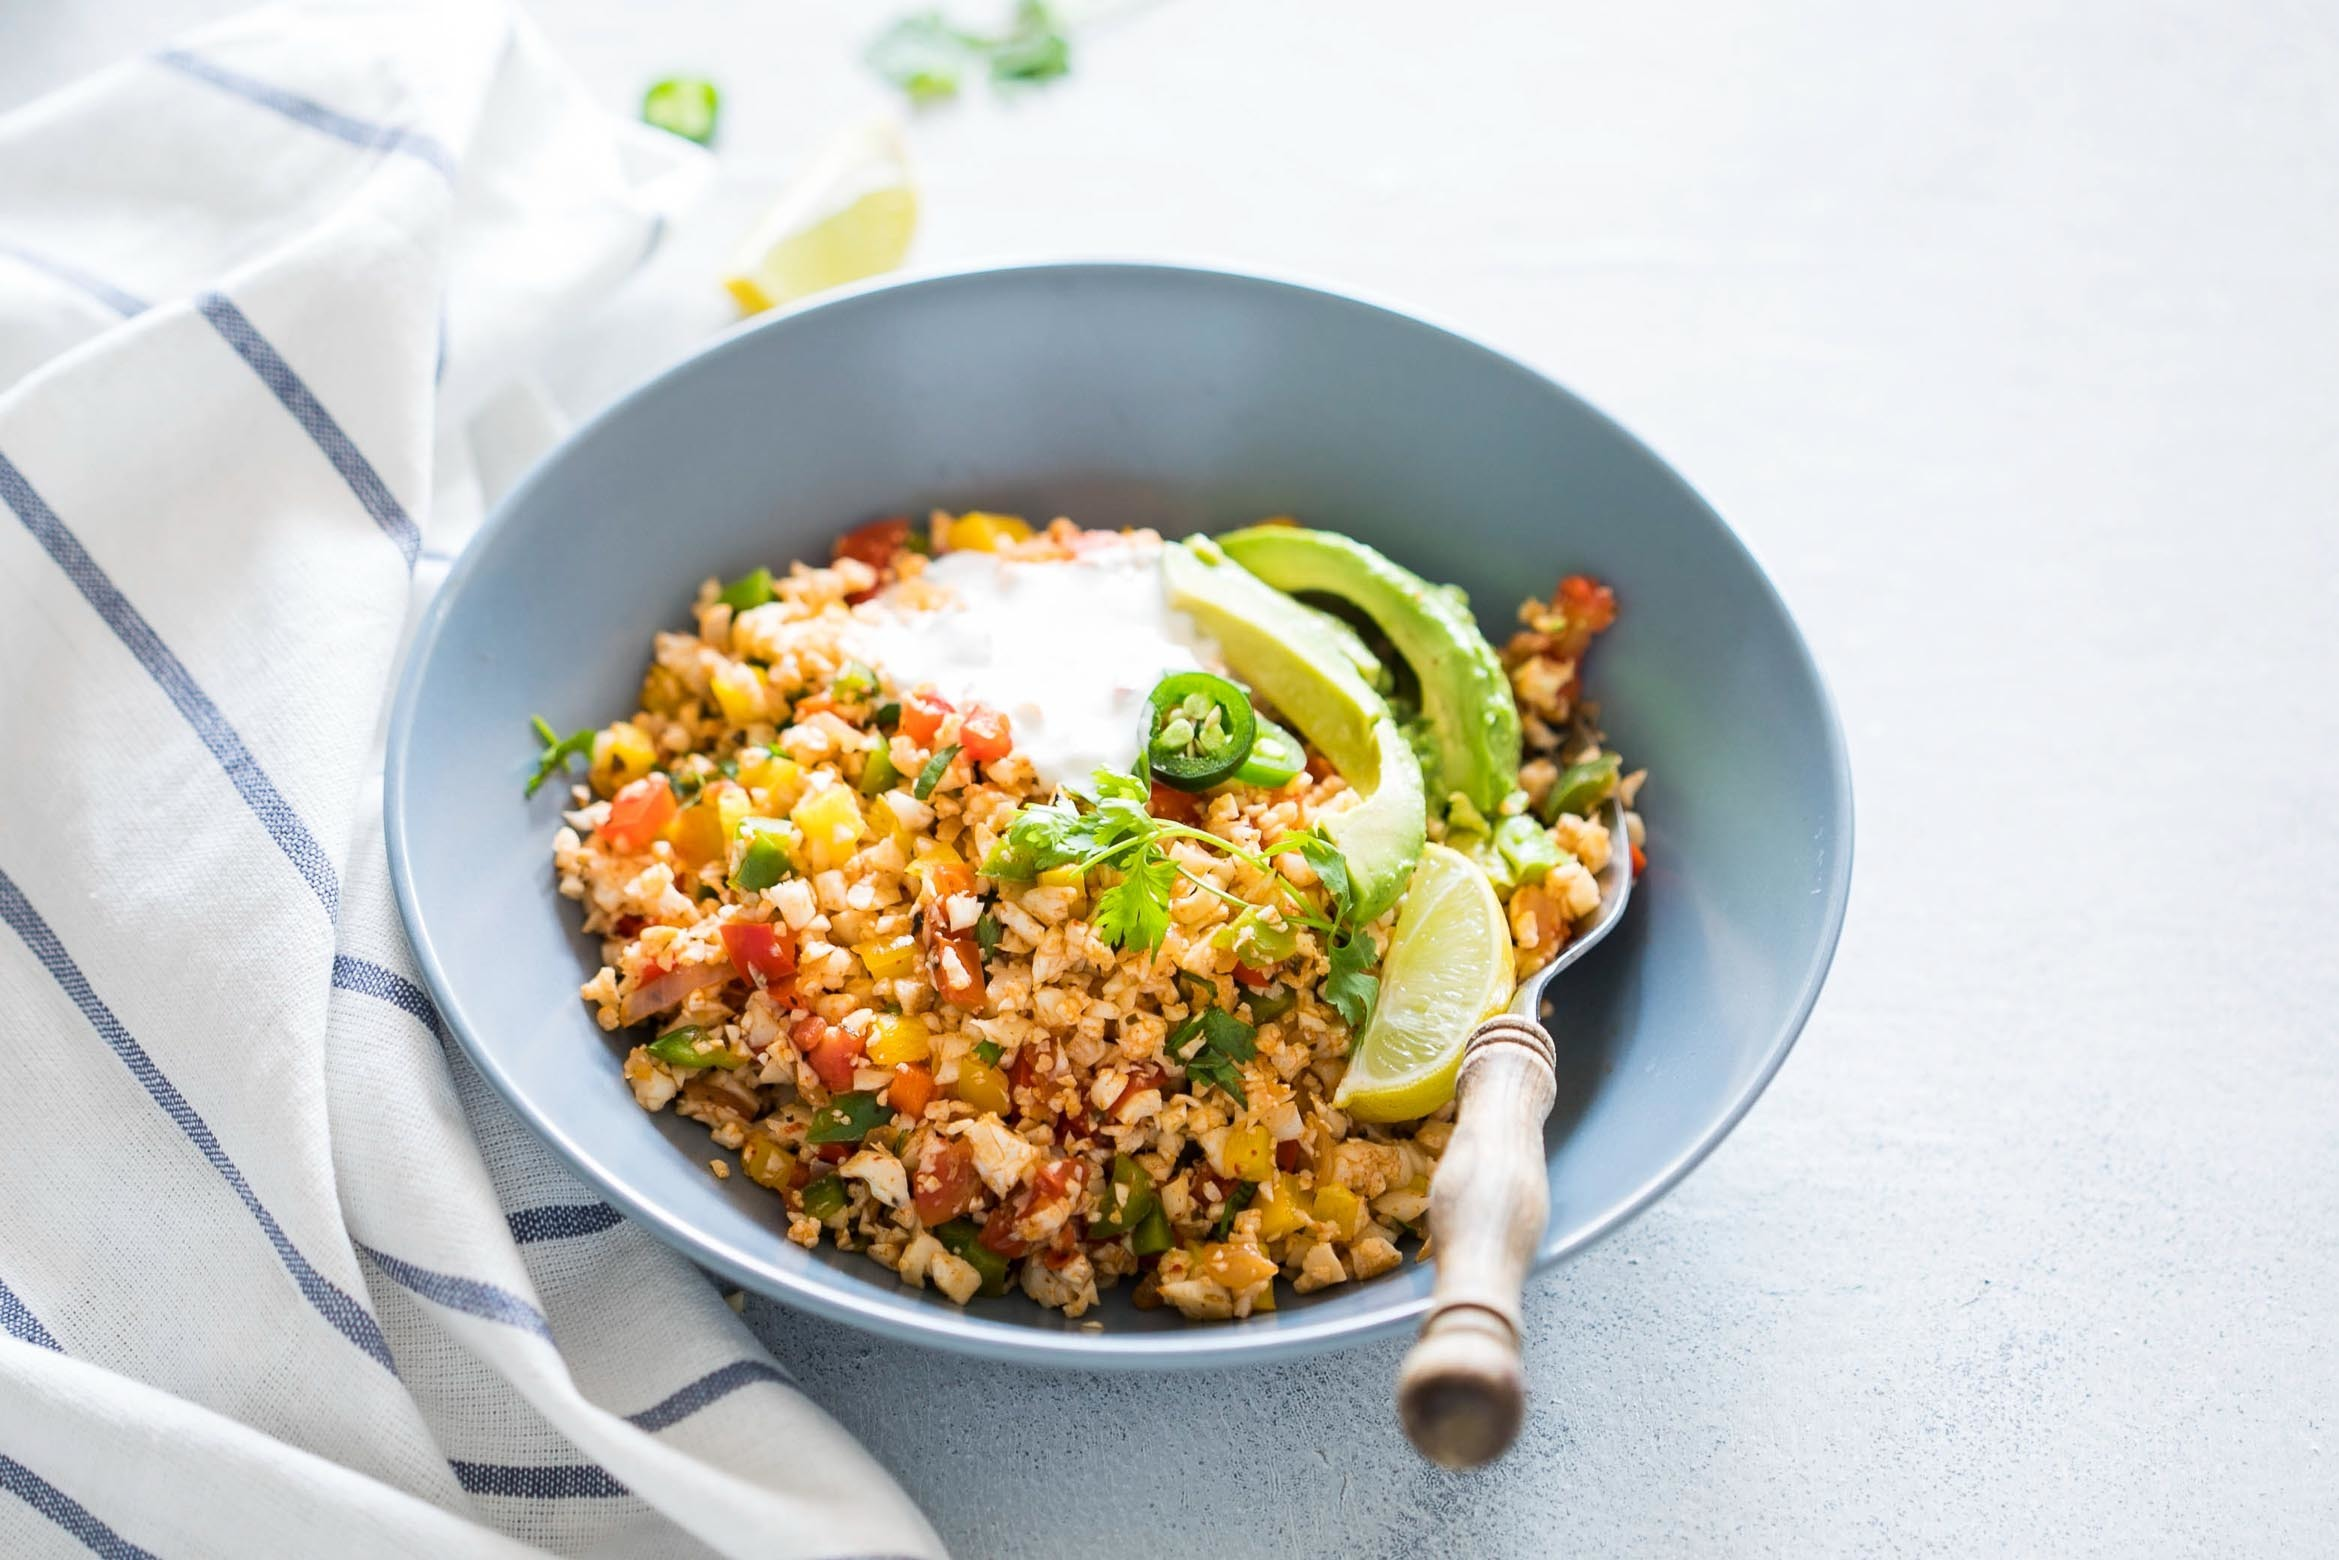 Low Carb Mexican Cauliflower Rice (Paleo, Vegan, Keto)